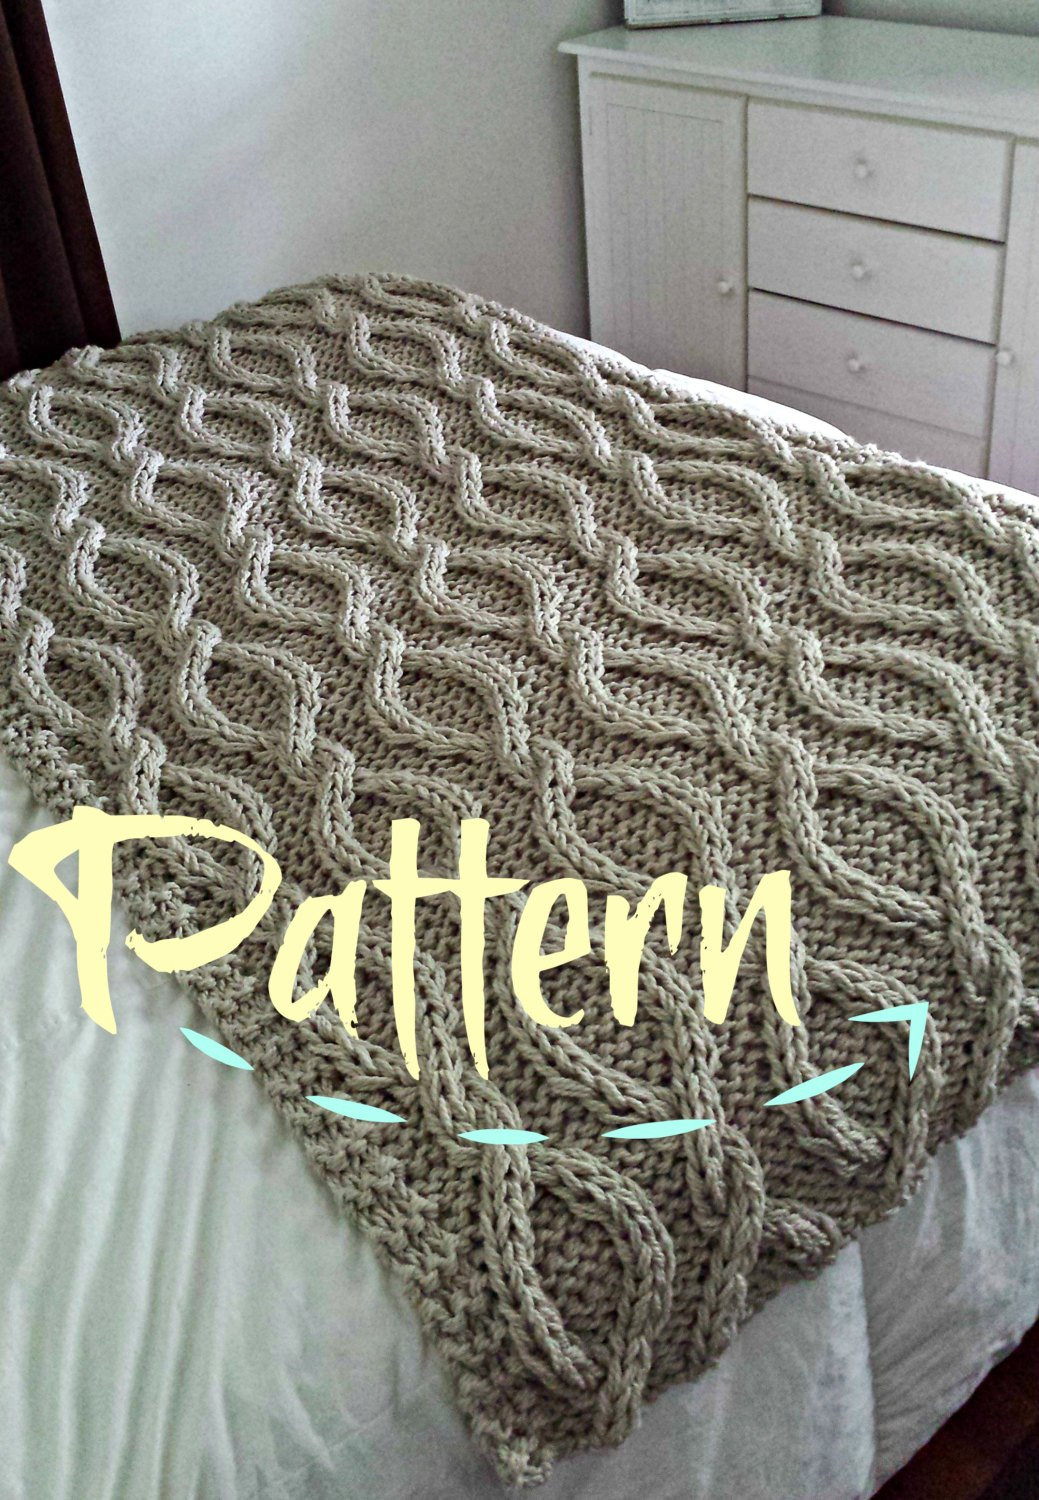 Chunky Knit Blanket Pattern Lovely Infinity Cable Knit Blanket Pattern by Ozarksmomma On Etsy Of Delightful 41 Pictures Chunky Knit Blanket Pattern